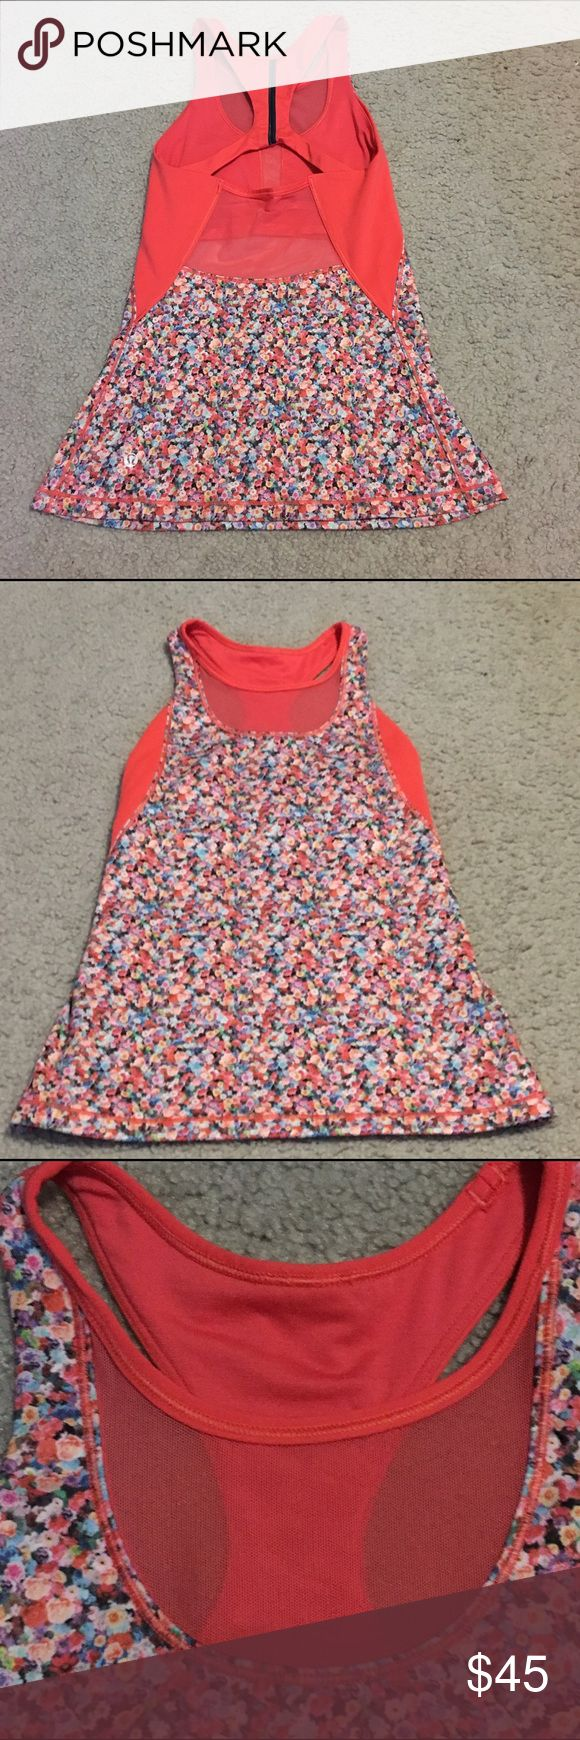 """Lululemon """"Mesh With Me"""" Floral Tank- Size 2 Lululemon """"Mesh with Me"""" Tank. Floral and tangerine color. Size 2. Perfect condition. Very rare tank top with beautiful back straps and mesh panels! No pads included. Other Lululemon tanks and skirts in closet for bundle discount! lululemon athletica Tops Tank Tops"""